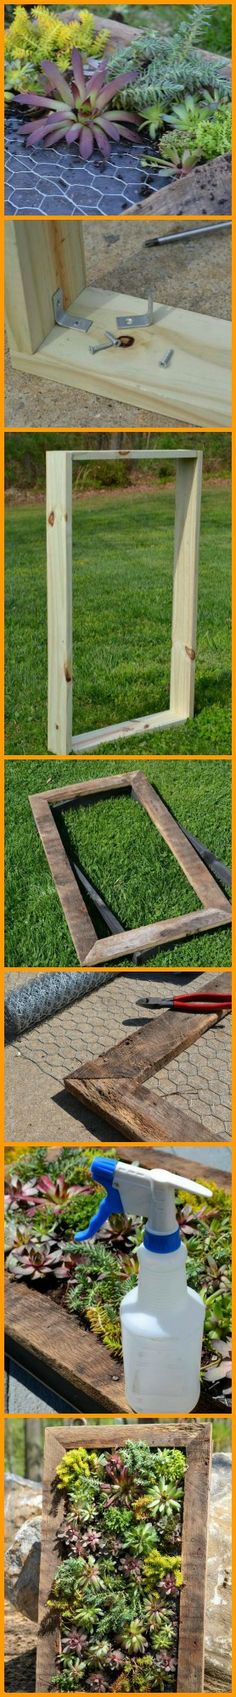 Yes it's a 'living picture' that requires minimal watering, and yes you can make one yourself. http://theownerbuildernetwork.co/g5gs